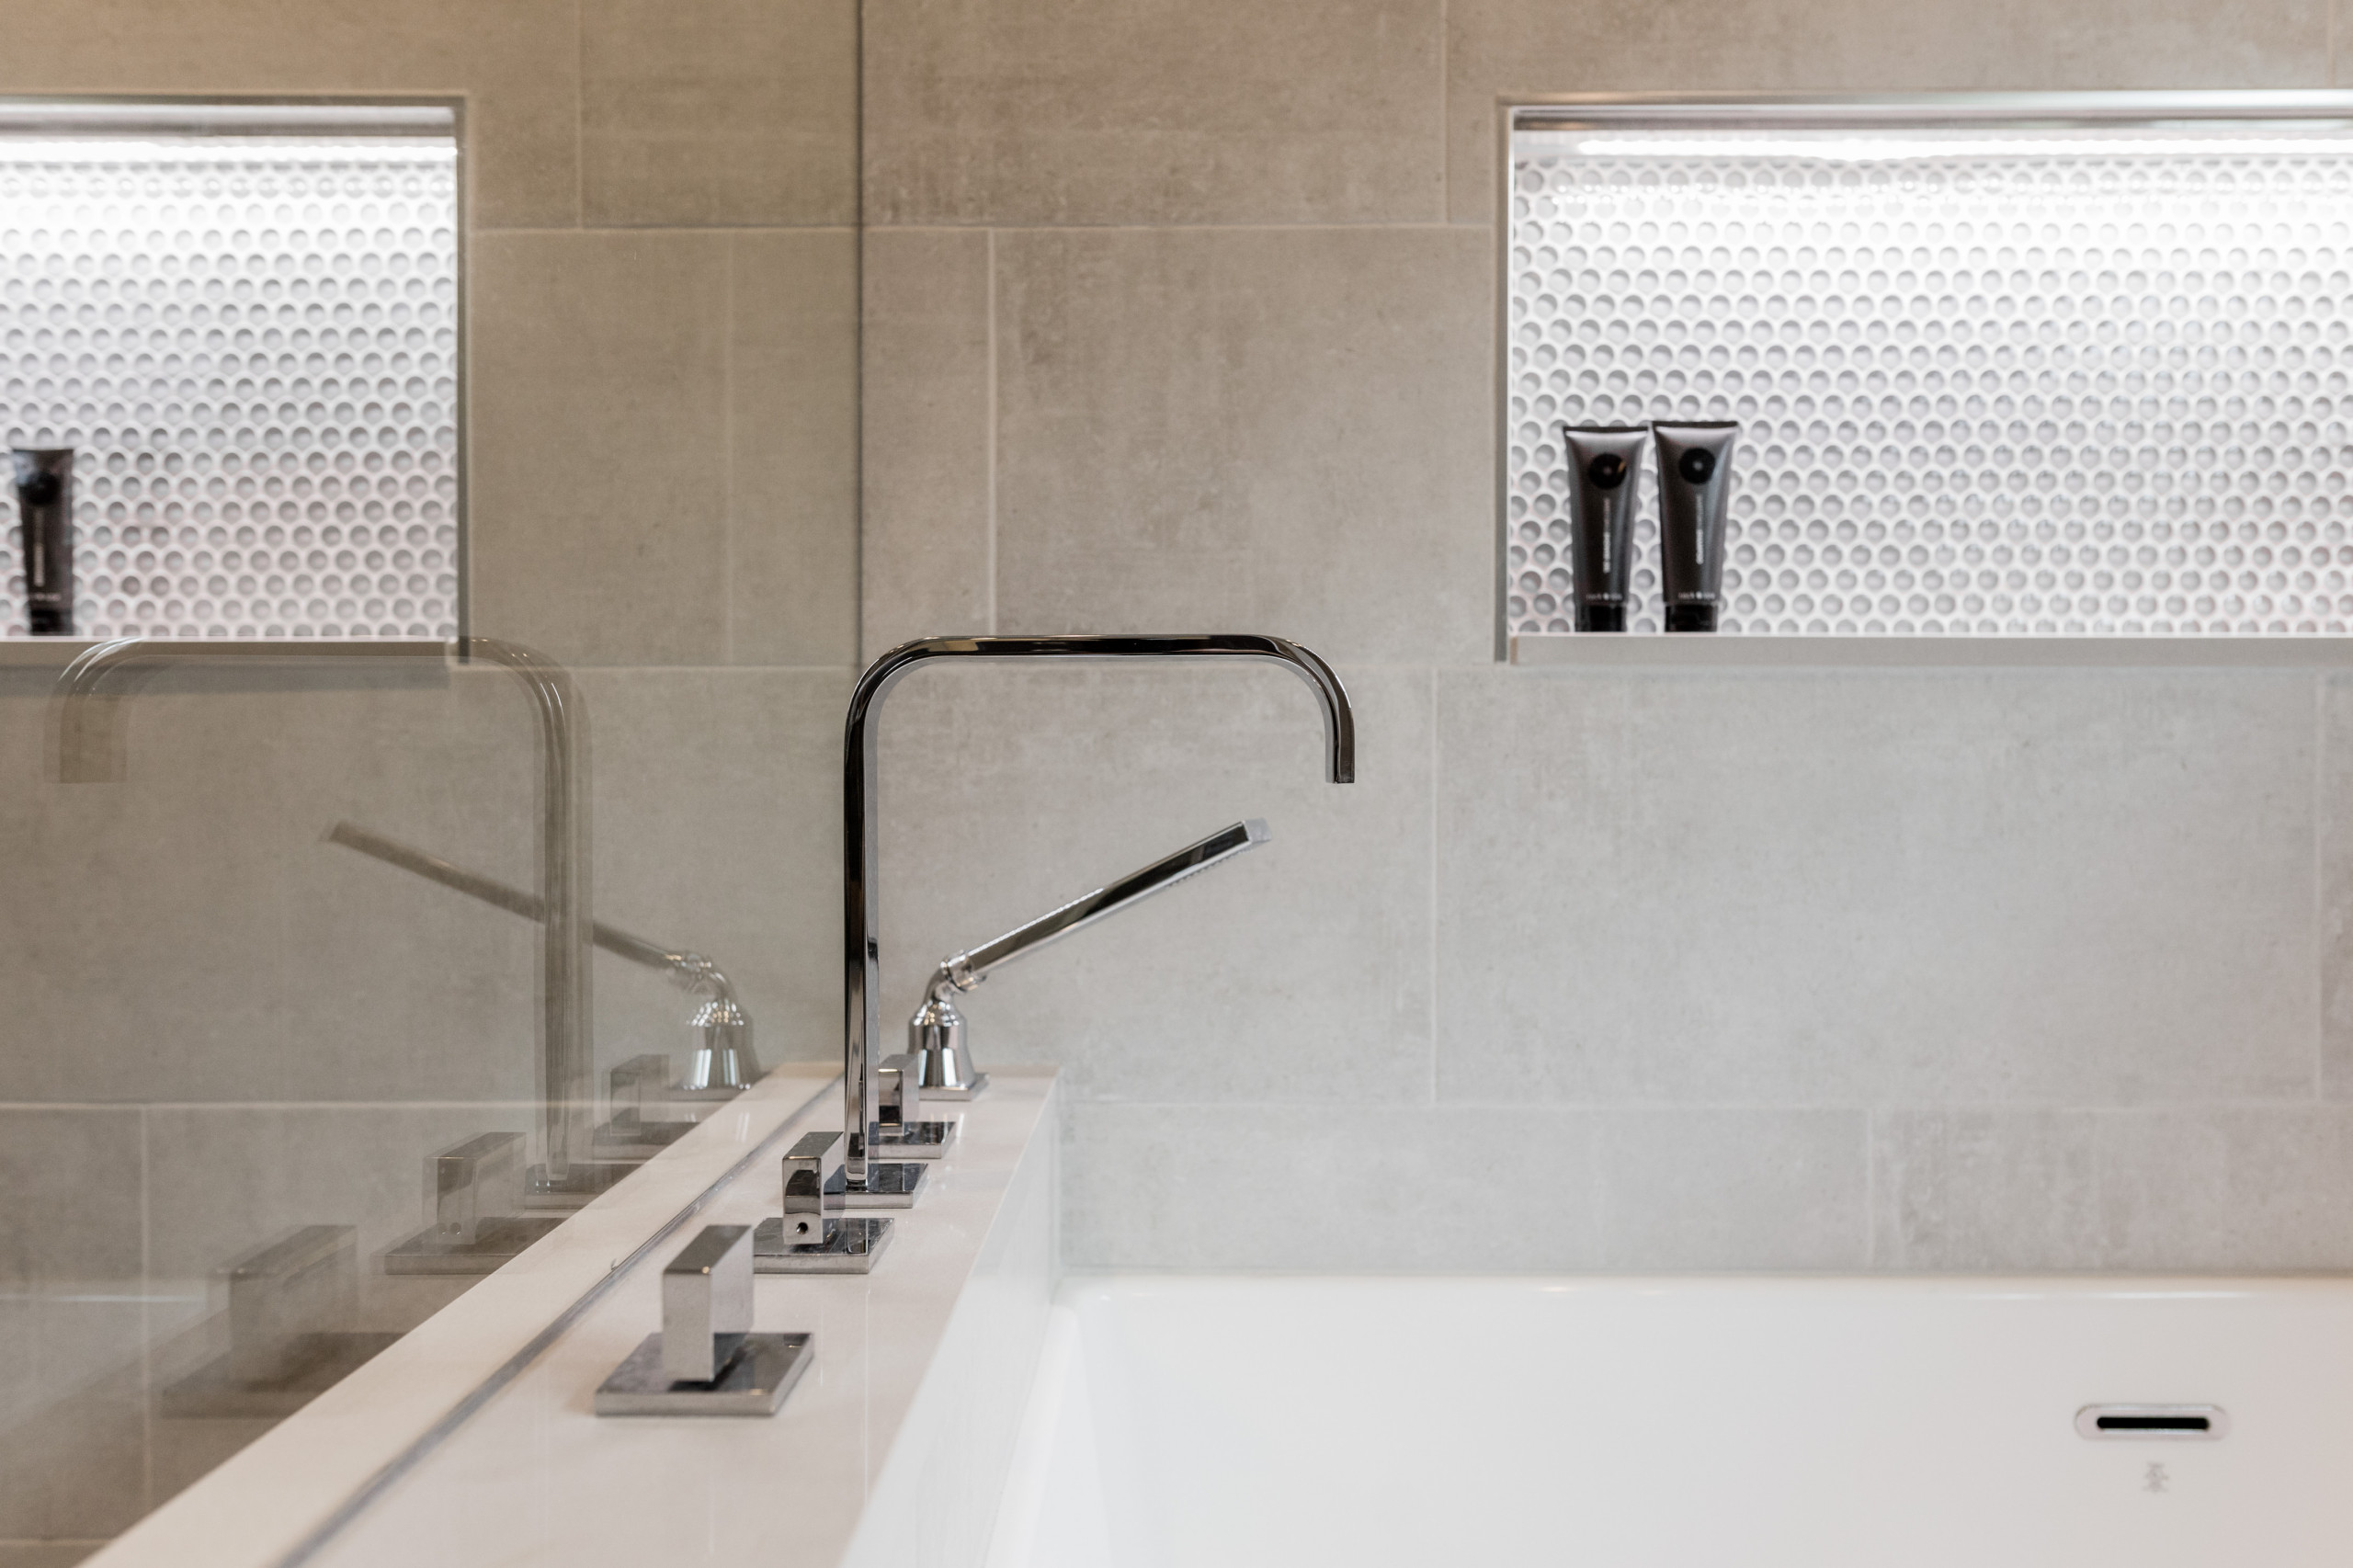 Lighting Play in a Master Bath